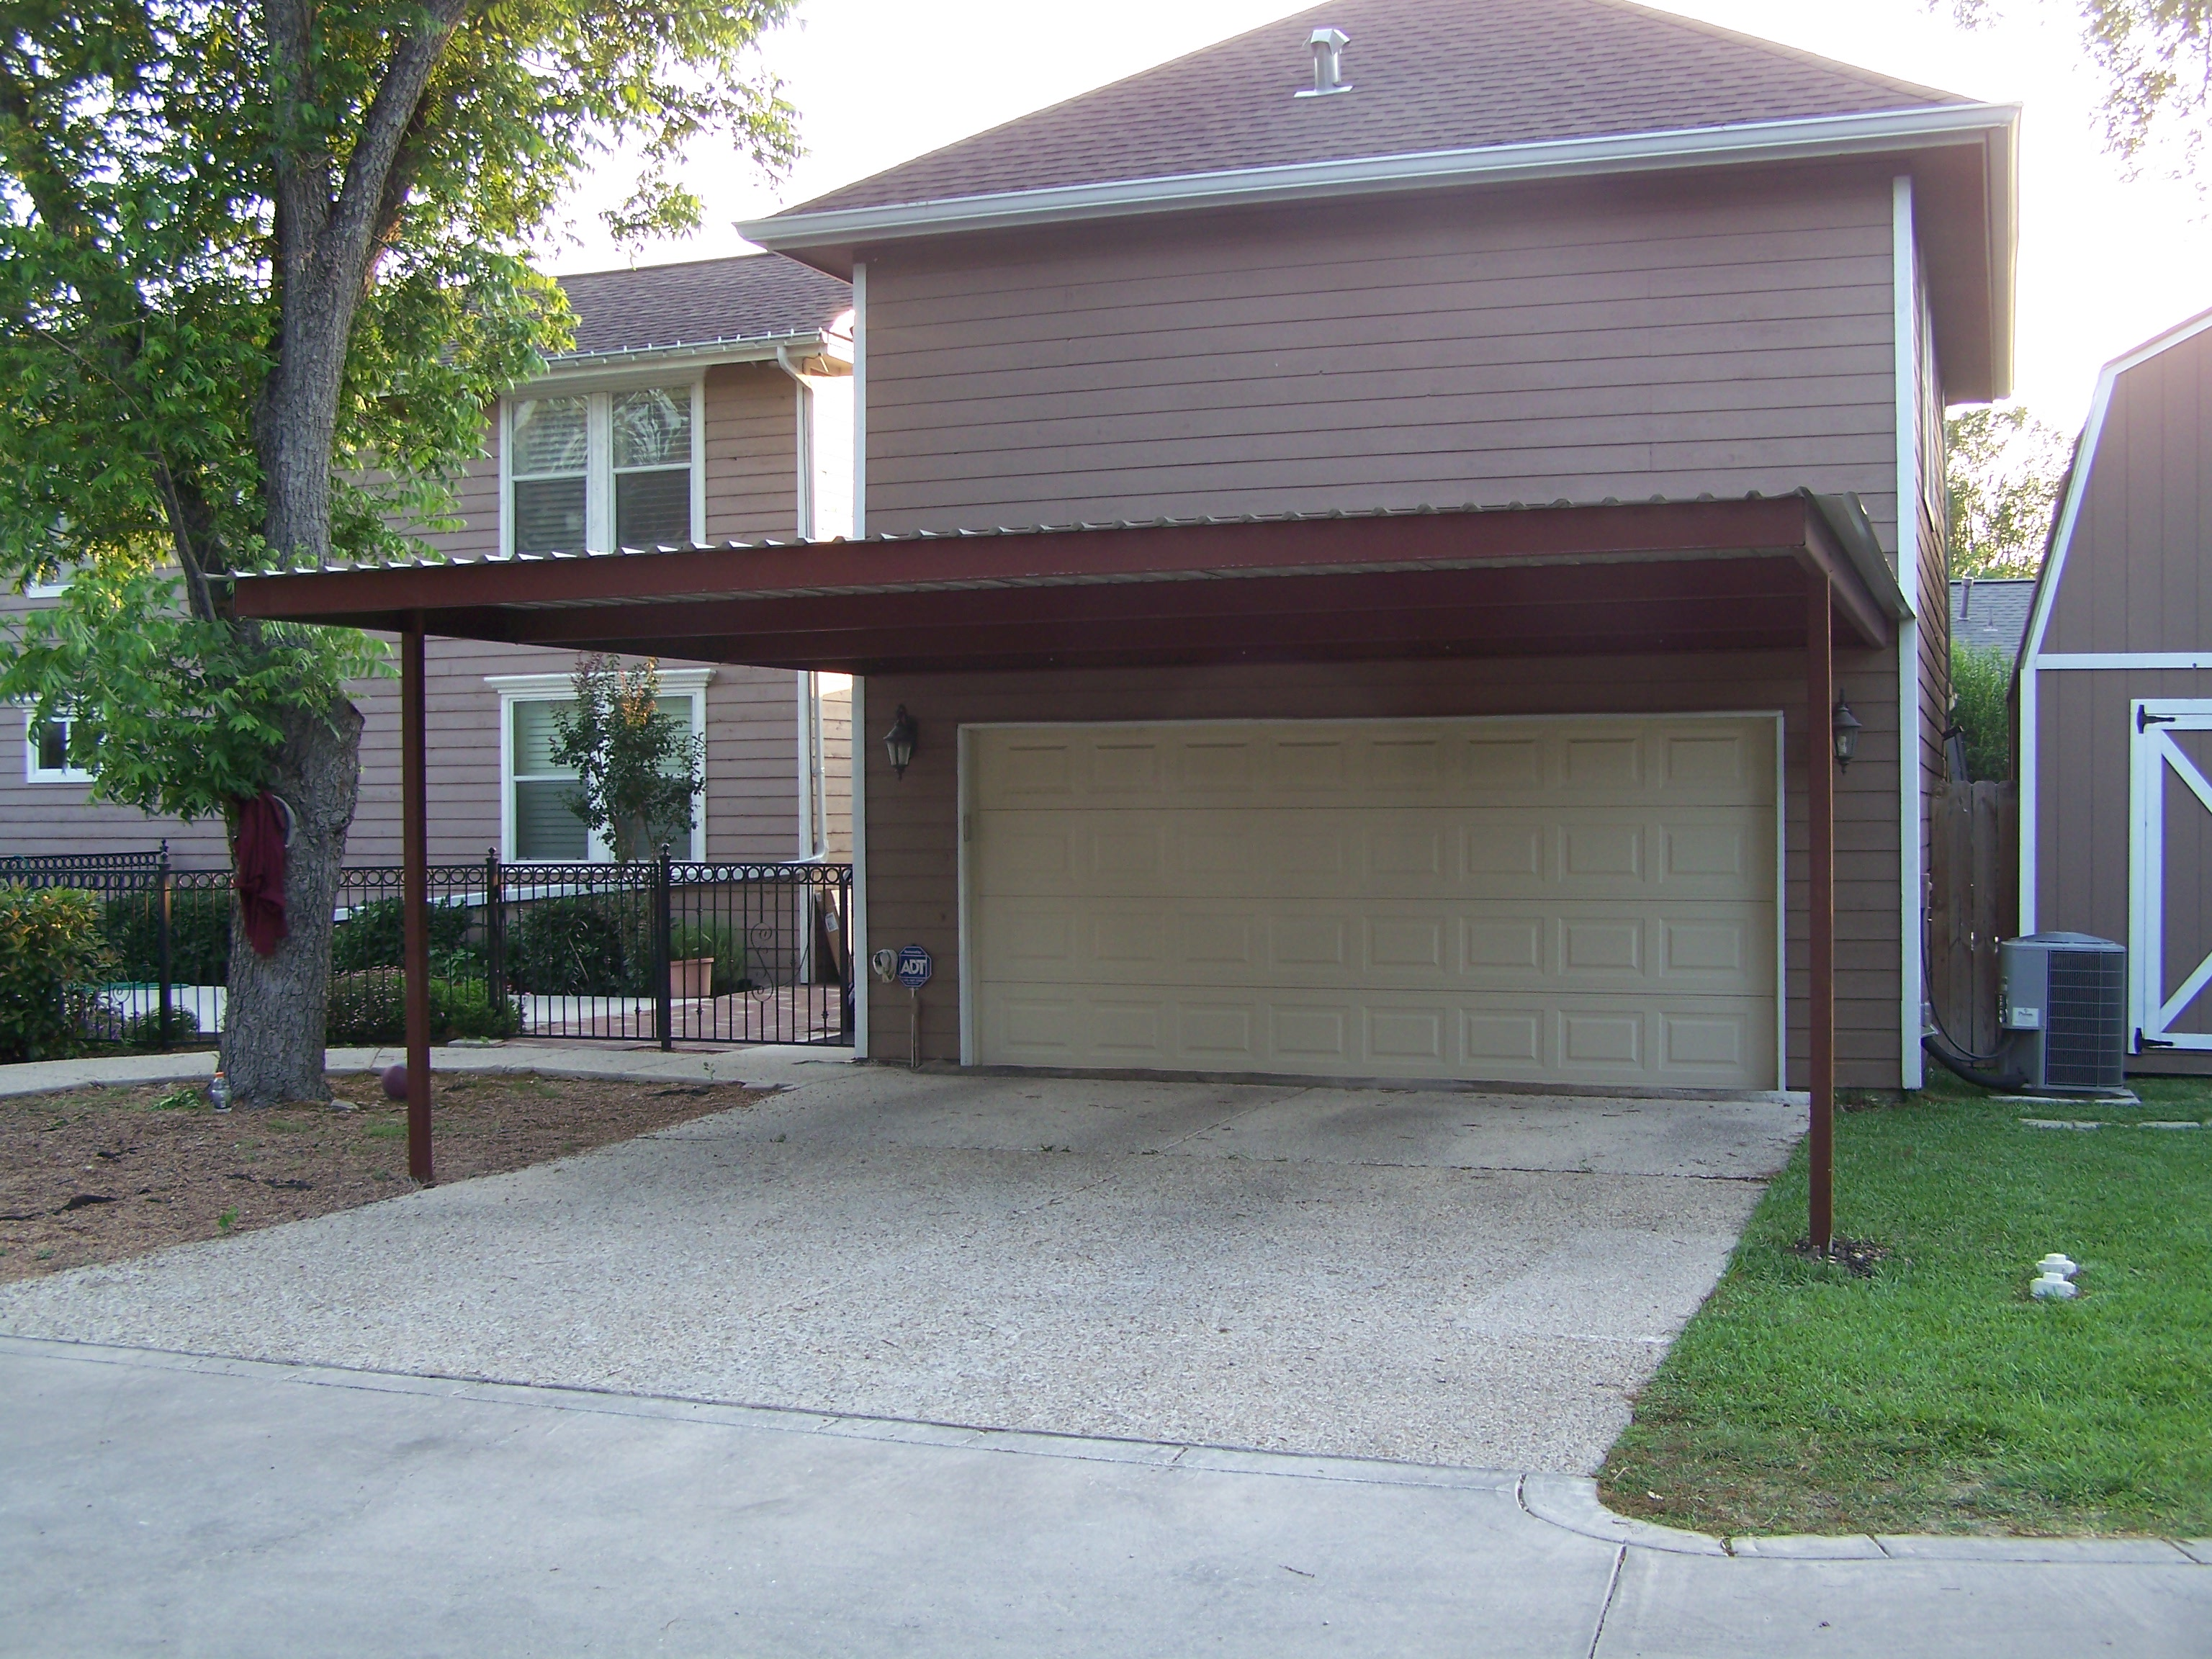 Alamo heights attached carport carport patio covers Garage carports